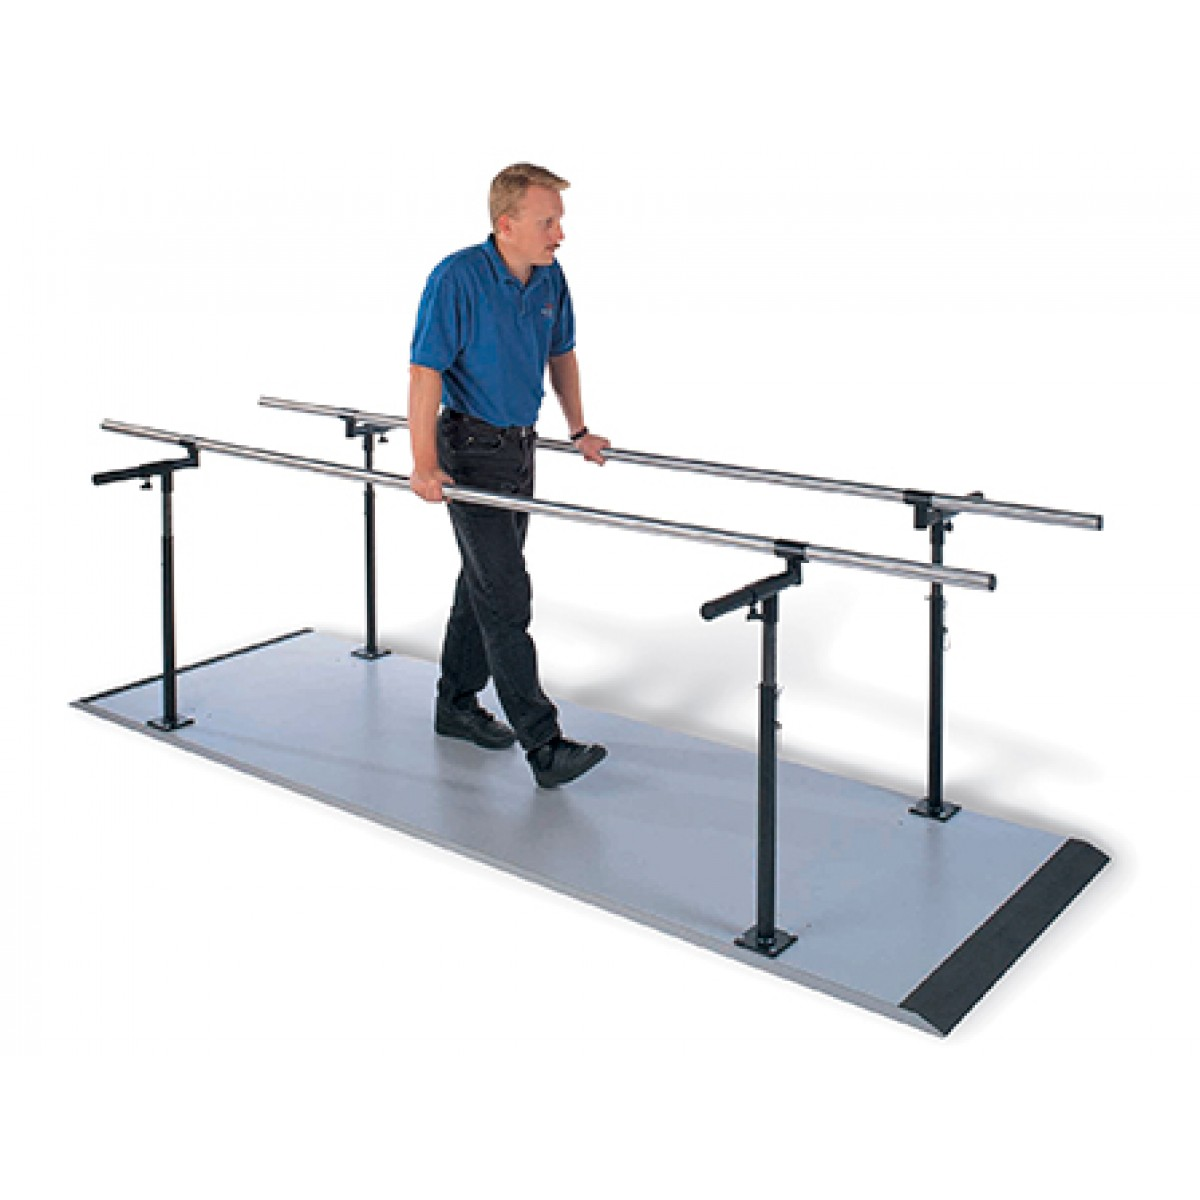 Hausmann S 320 Econo Platform Mounted Parallel Bars